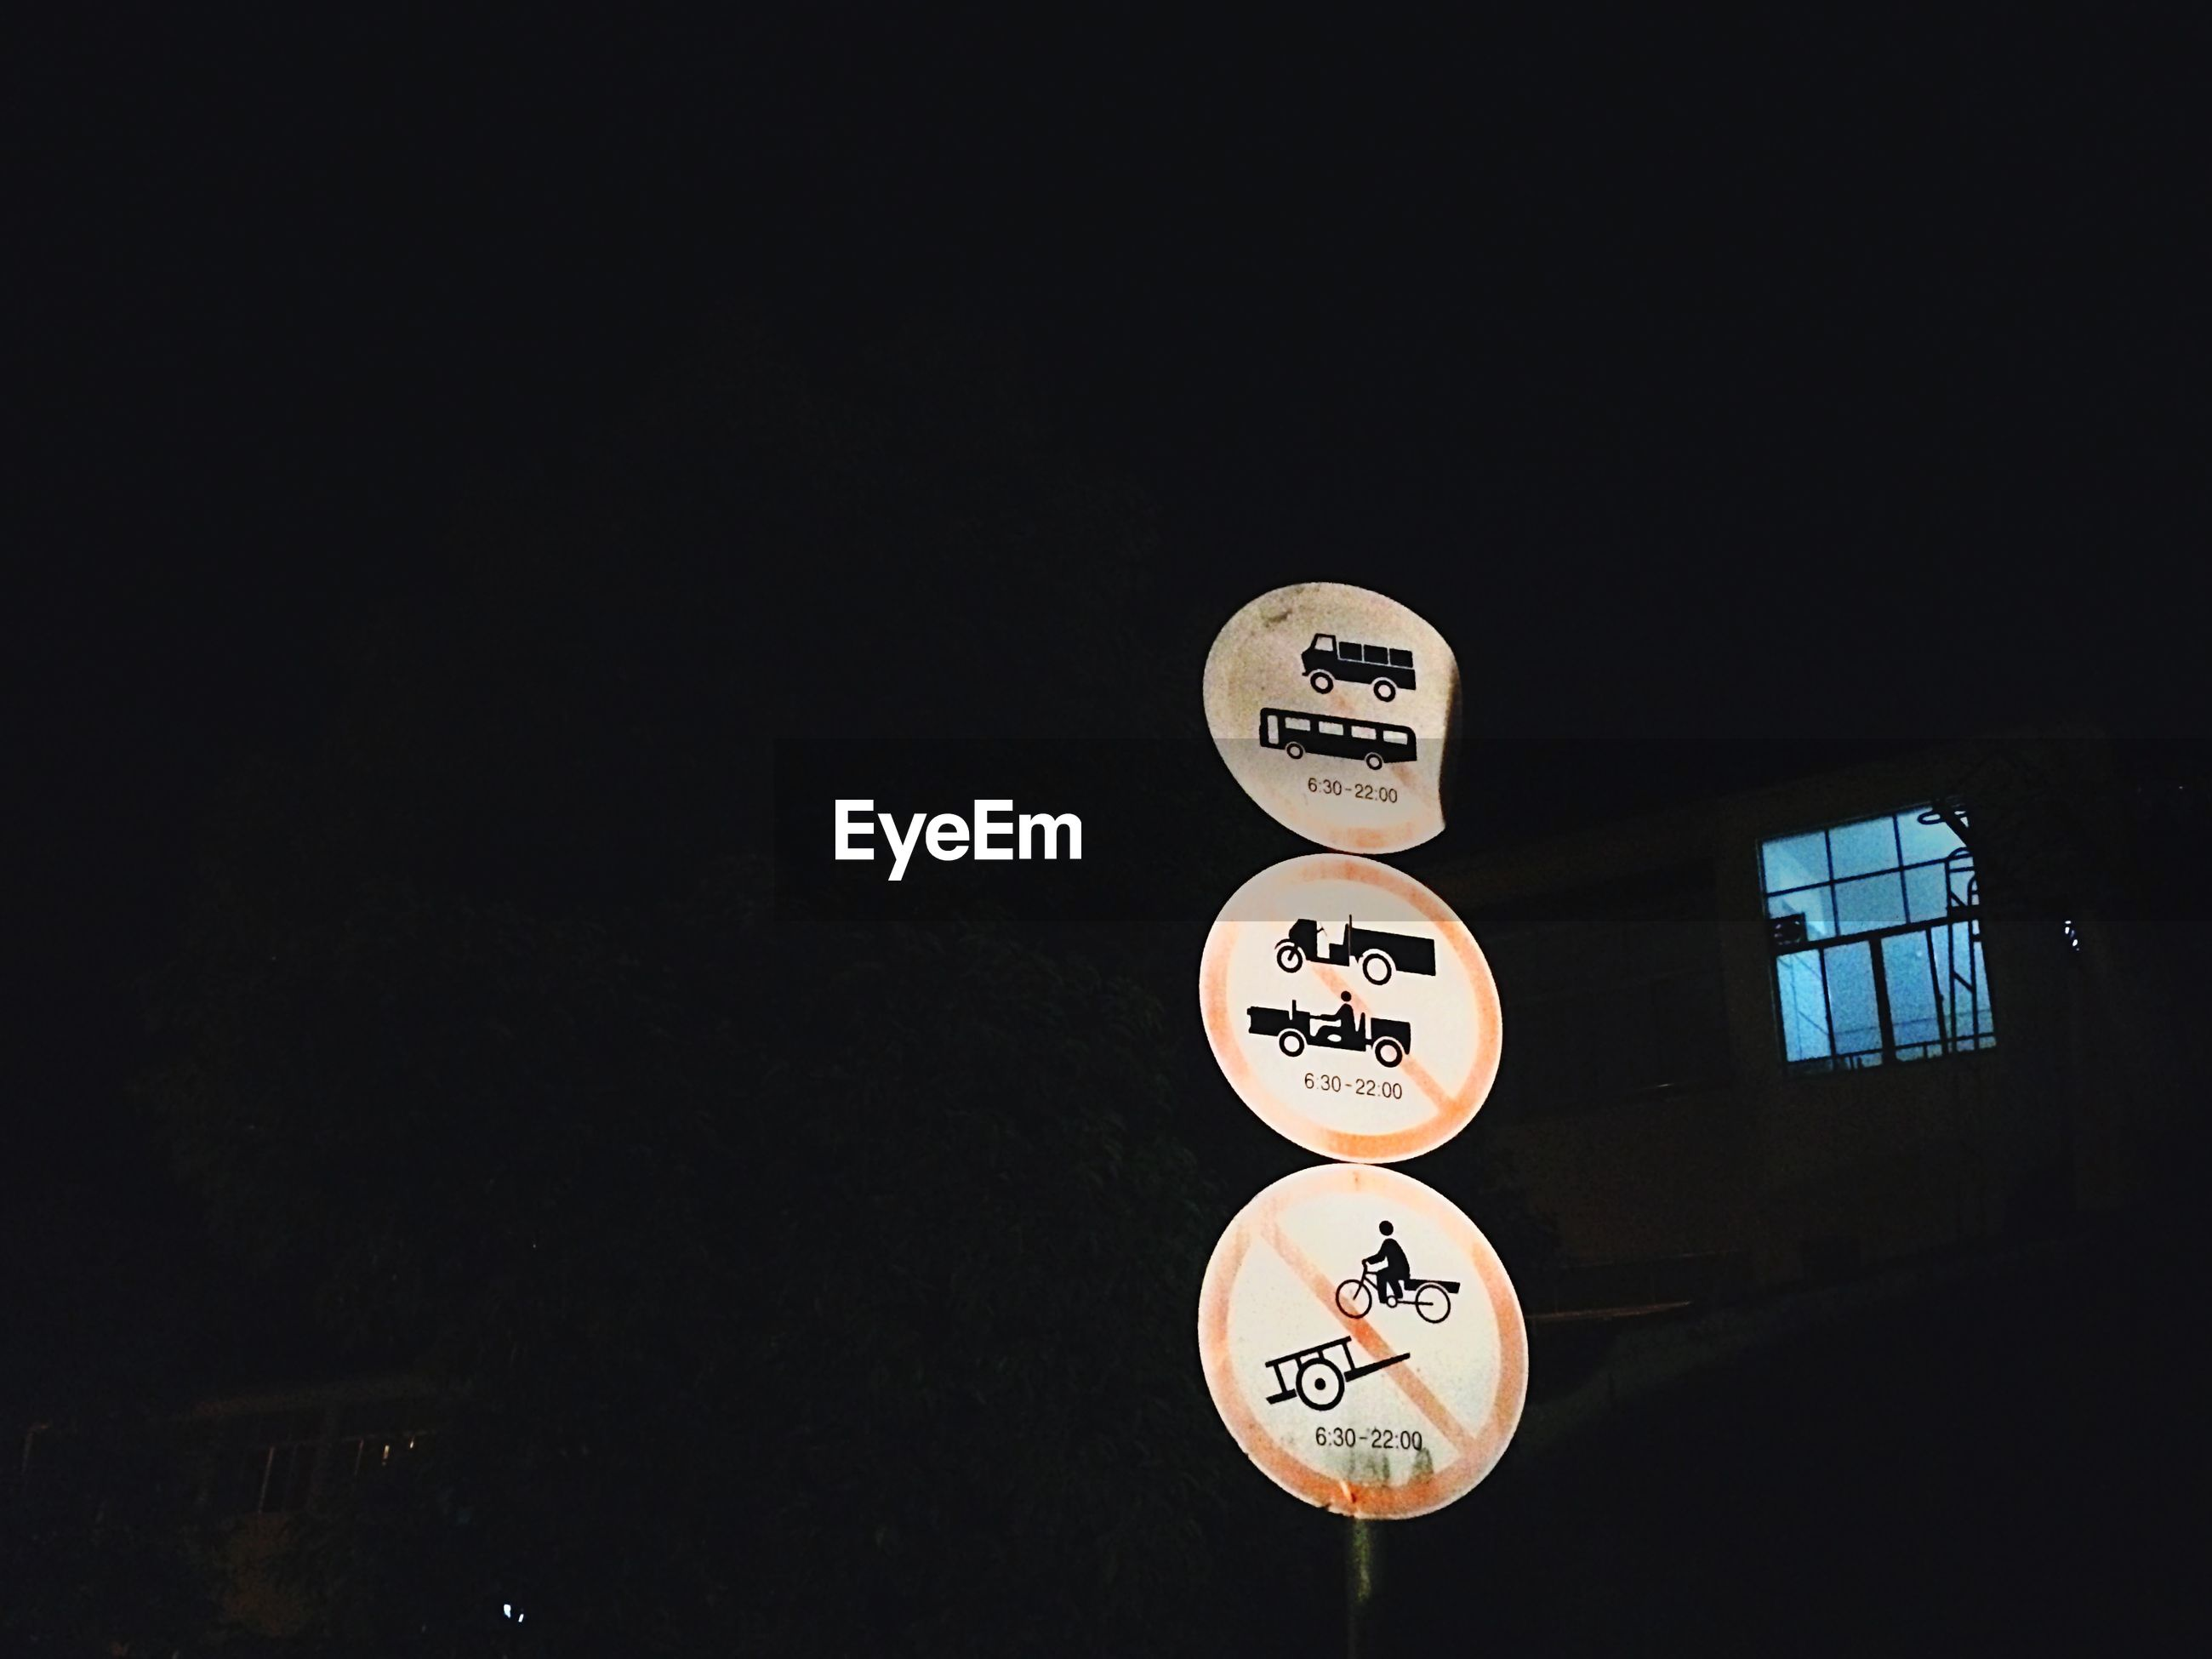 text, communication, western script, sign, information sign, information, capital letter, guidance, non-western script, copy space, illuminated, number, warning sign, clear sky, night, low angle view, road sign, no people, circle, arrow symbol